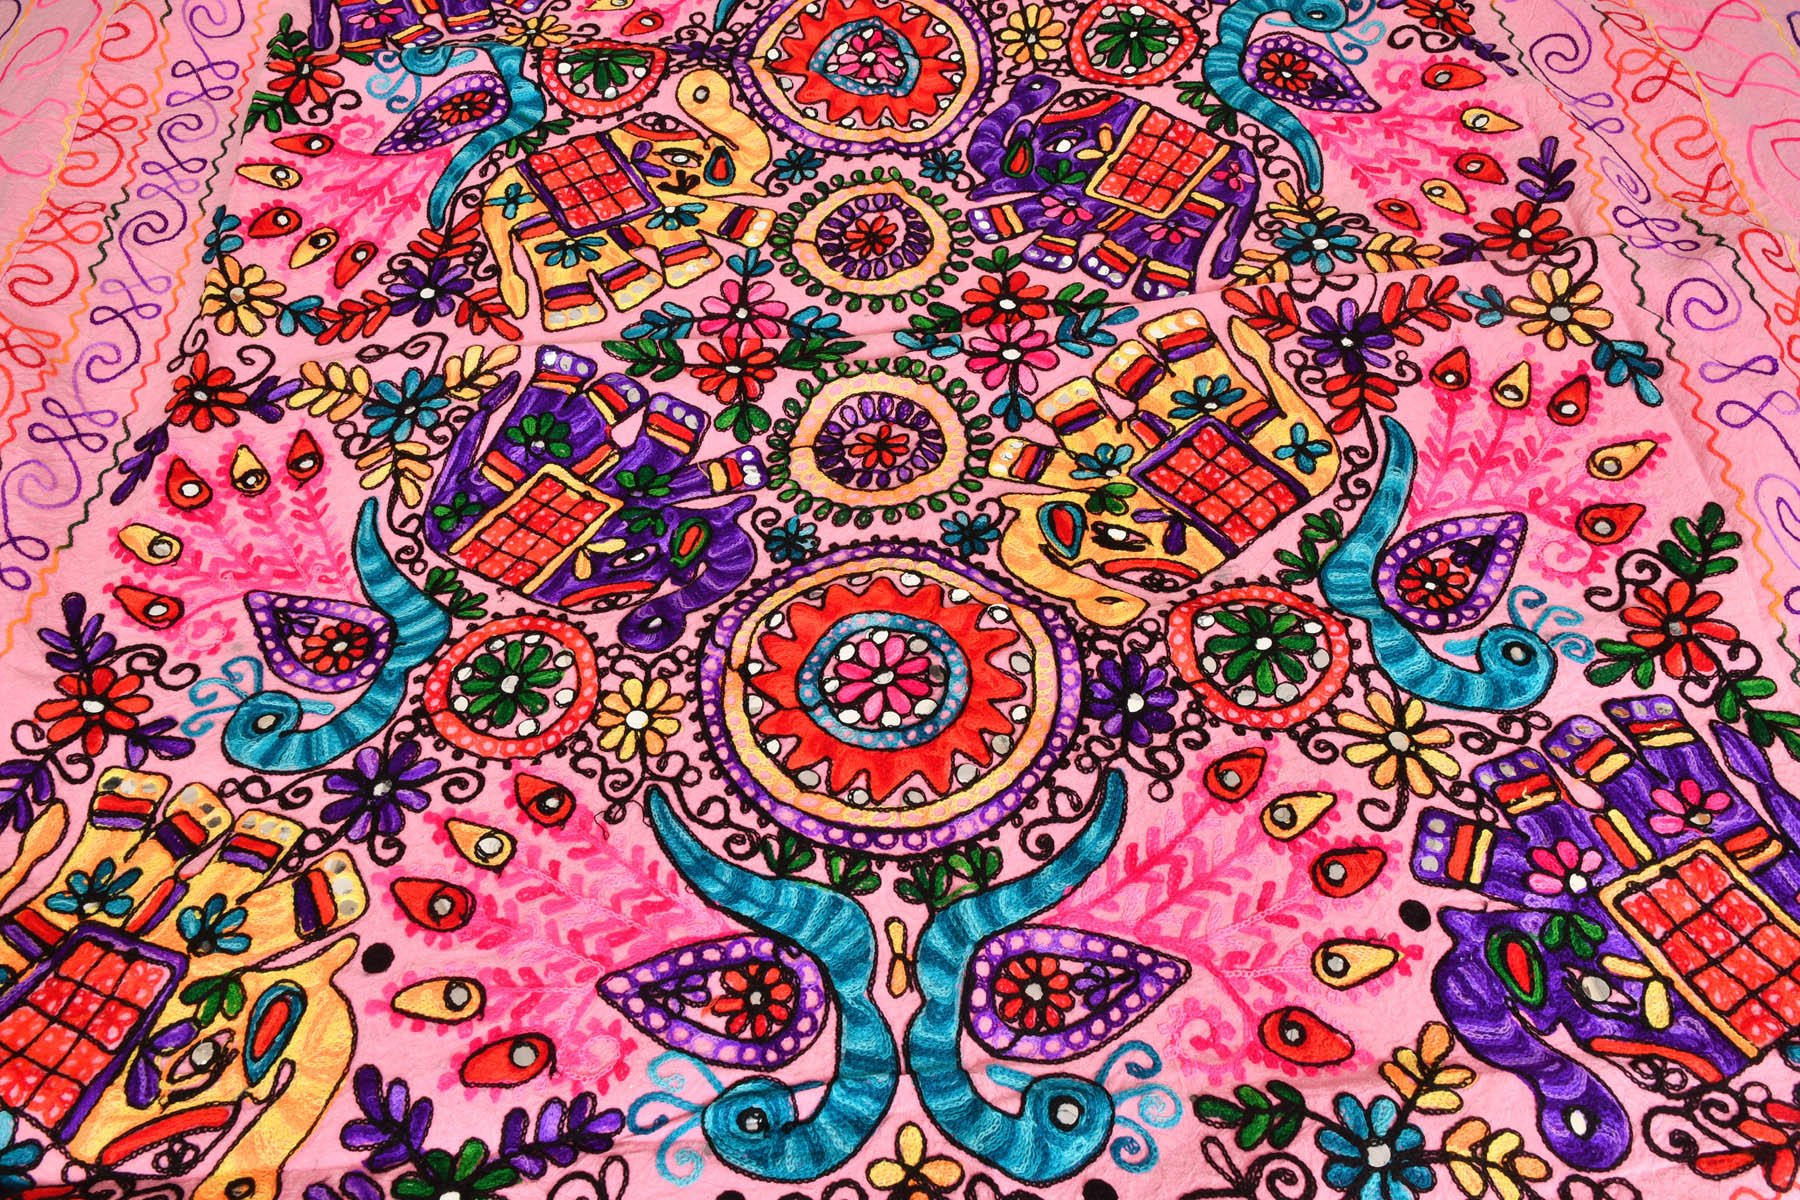 Bedspread from Gujarat with Embroidered Animals - Pure Cotton - Color Prism Pink Color by Exotic India (Image #2)